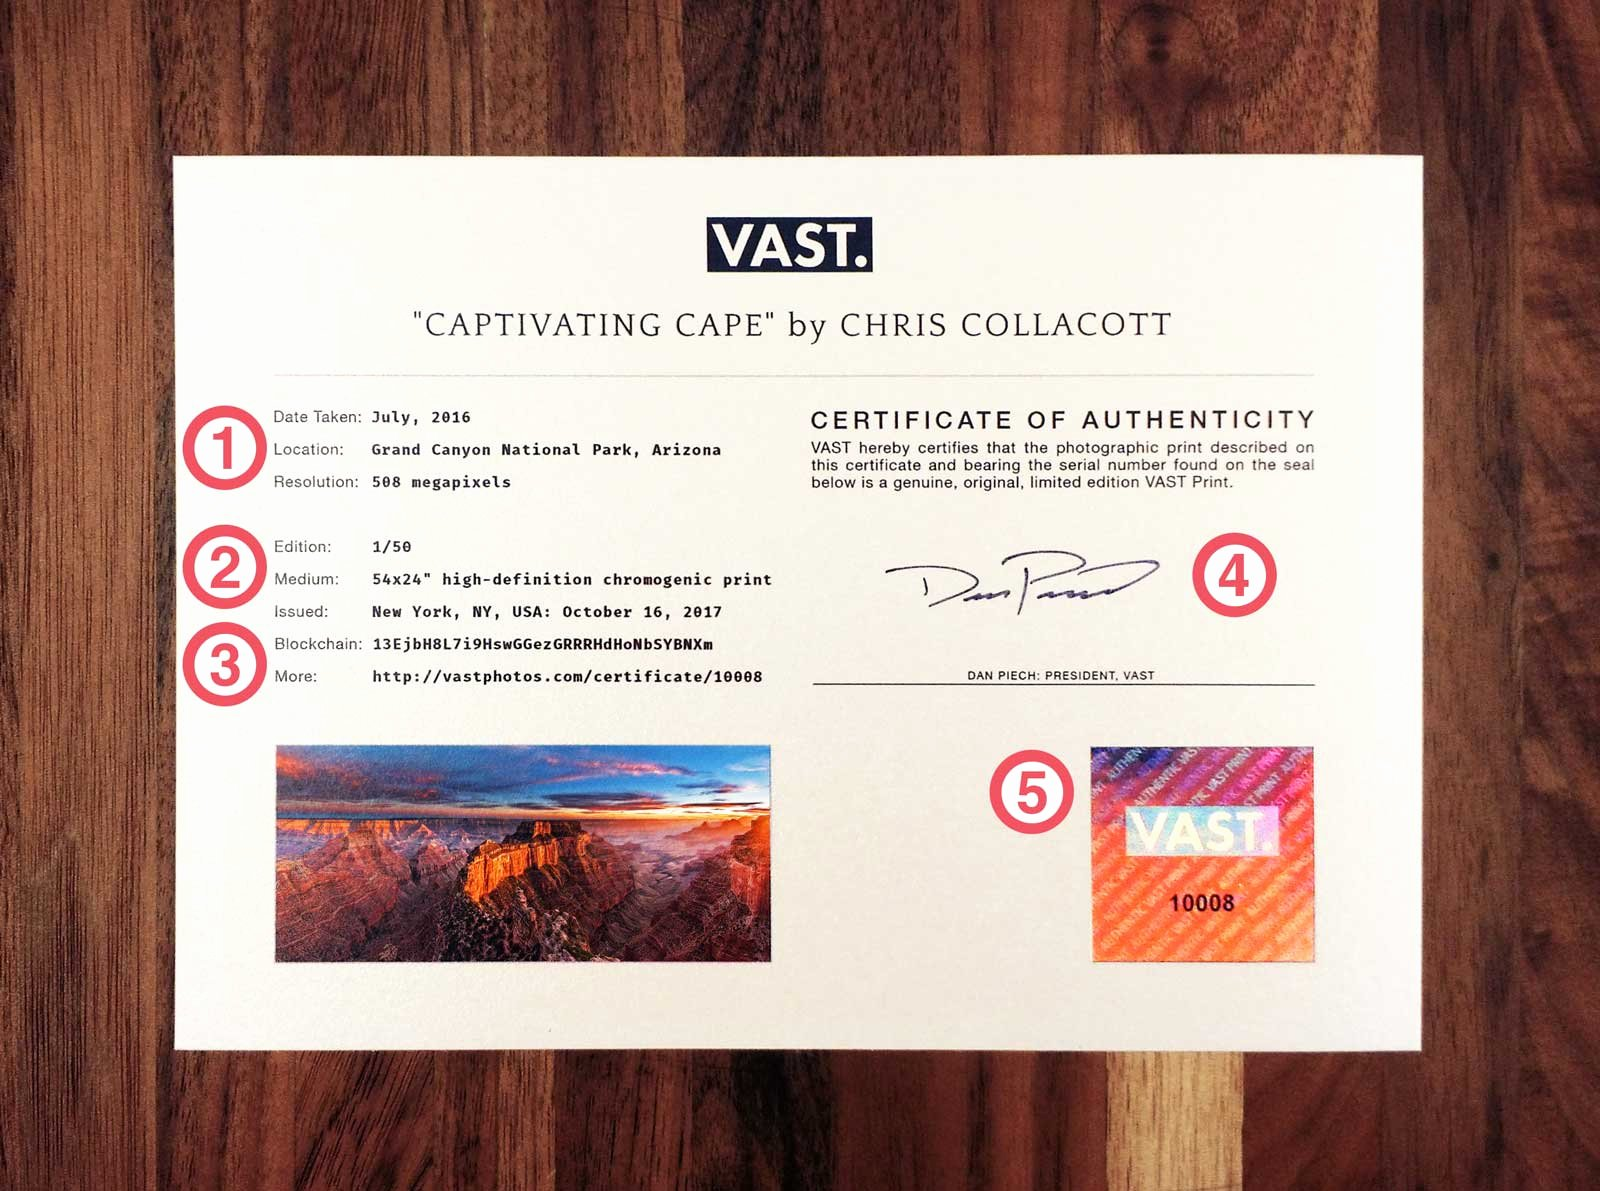 Certificate Of Authenticity Photography Awesome A Look at the Vast Certificate Of Authenticity – Vast Blog